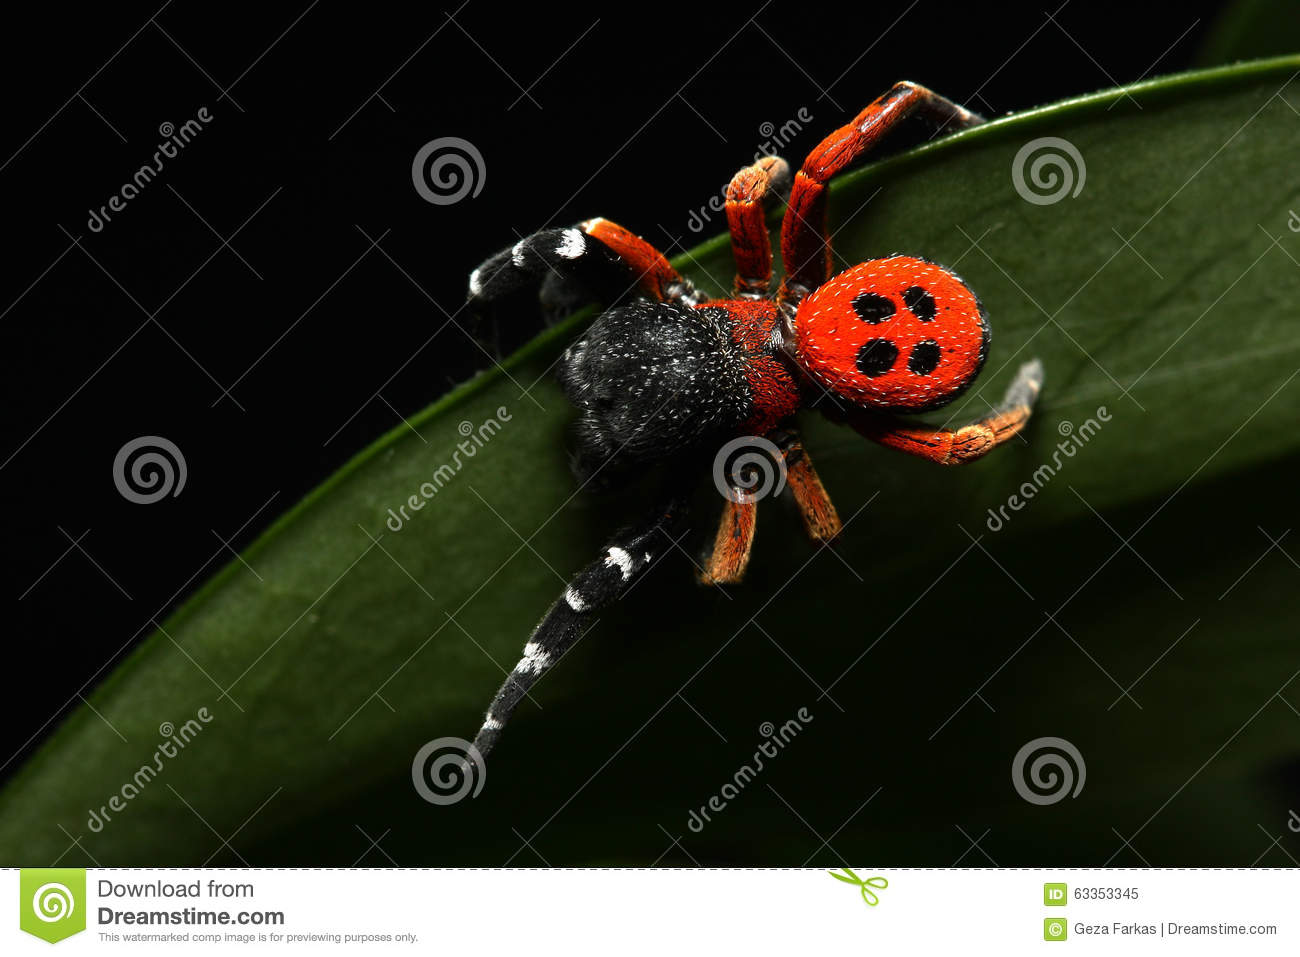 Download Red lady bird spider stock image. Image of dangerous - 63353345